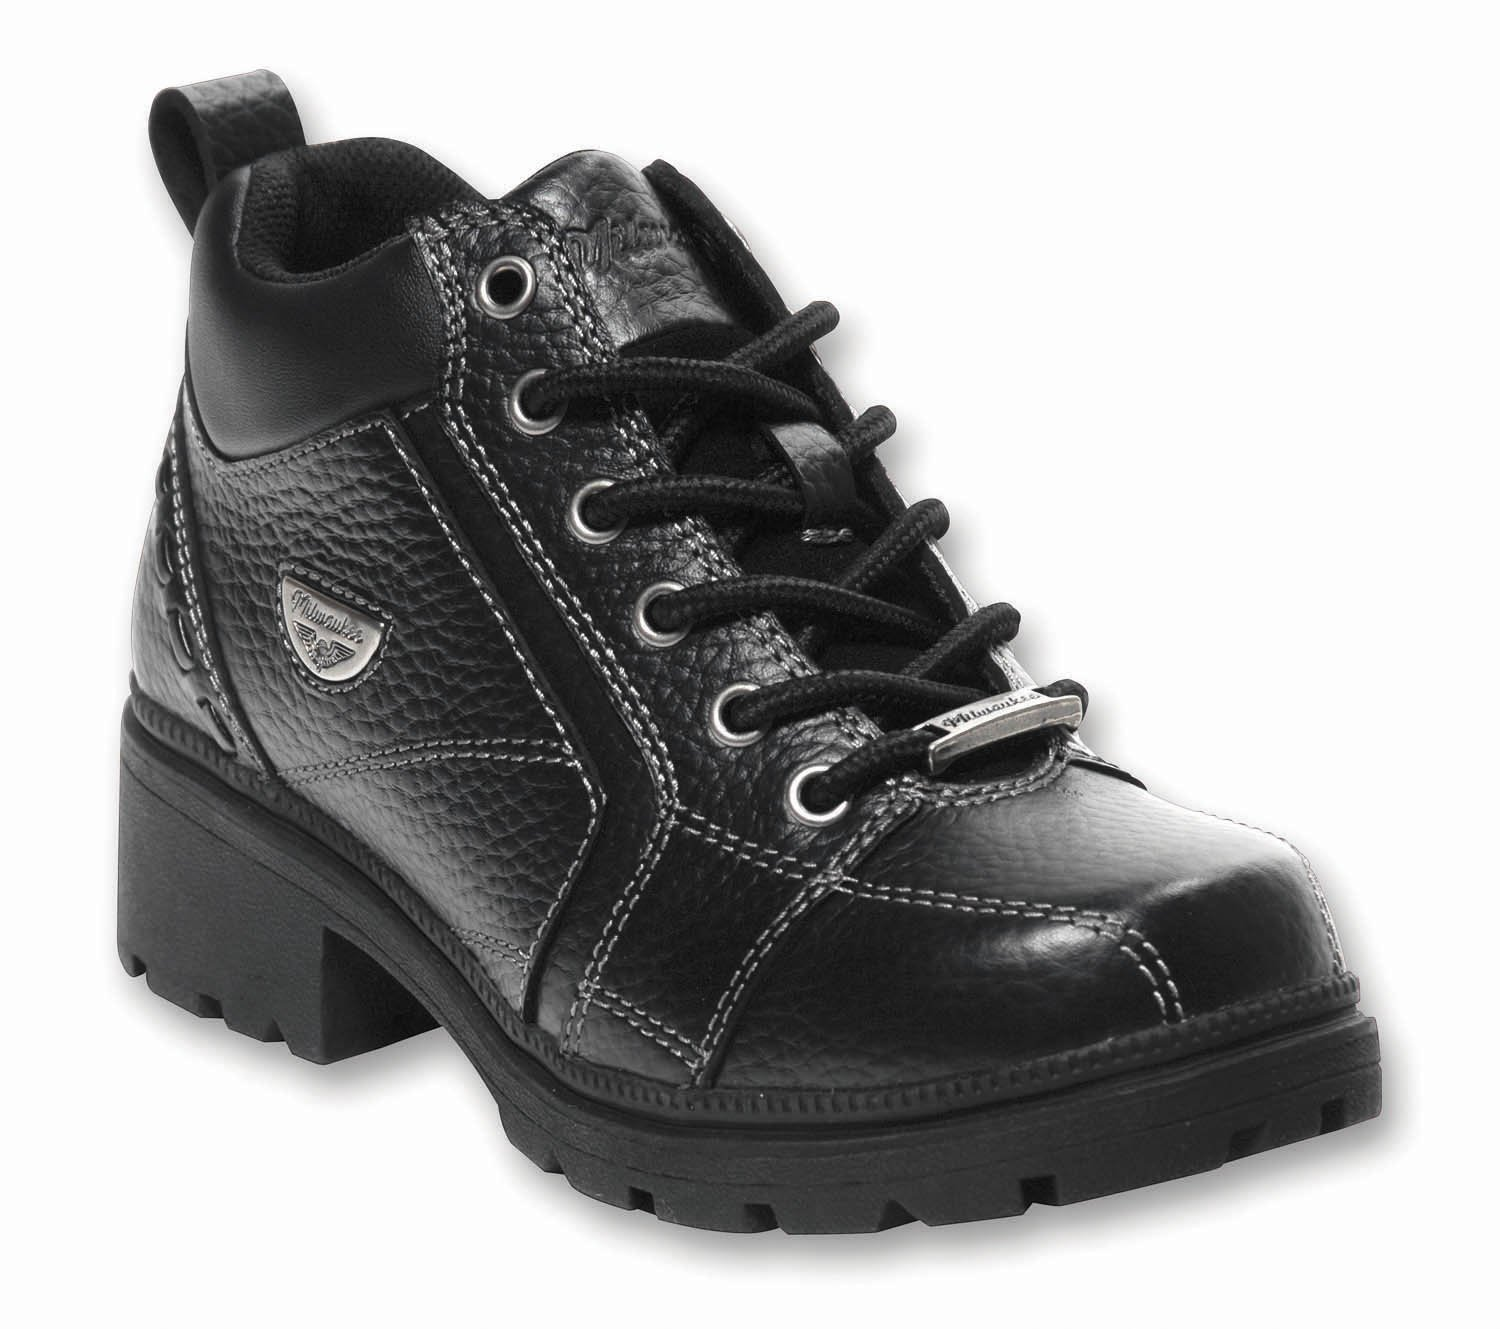 Milwaukee Motorcycle Clothing Company Womens Deceiver Boots (Black, Size 6) MVB23612